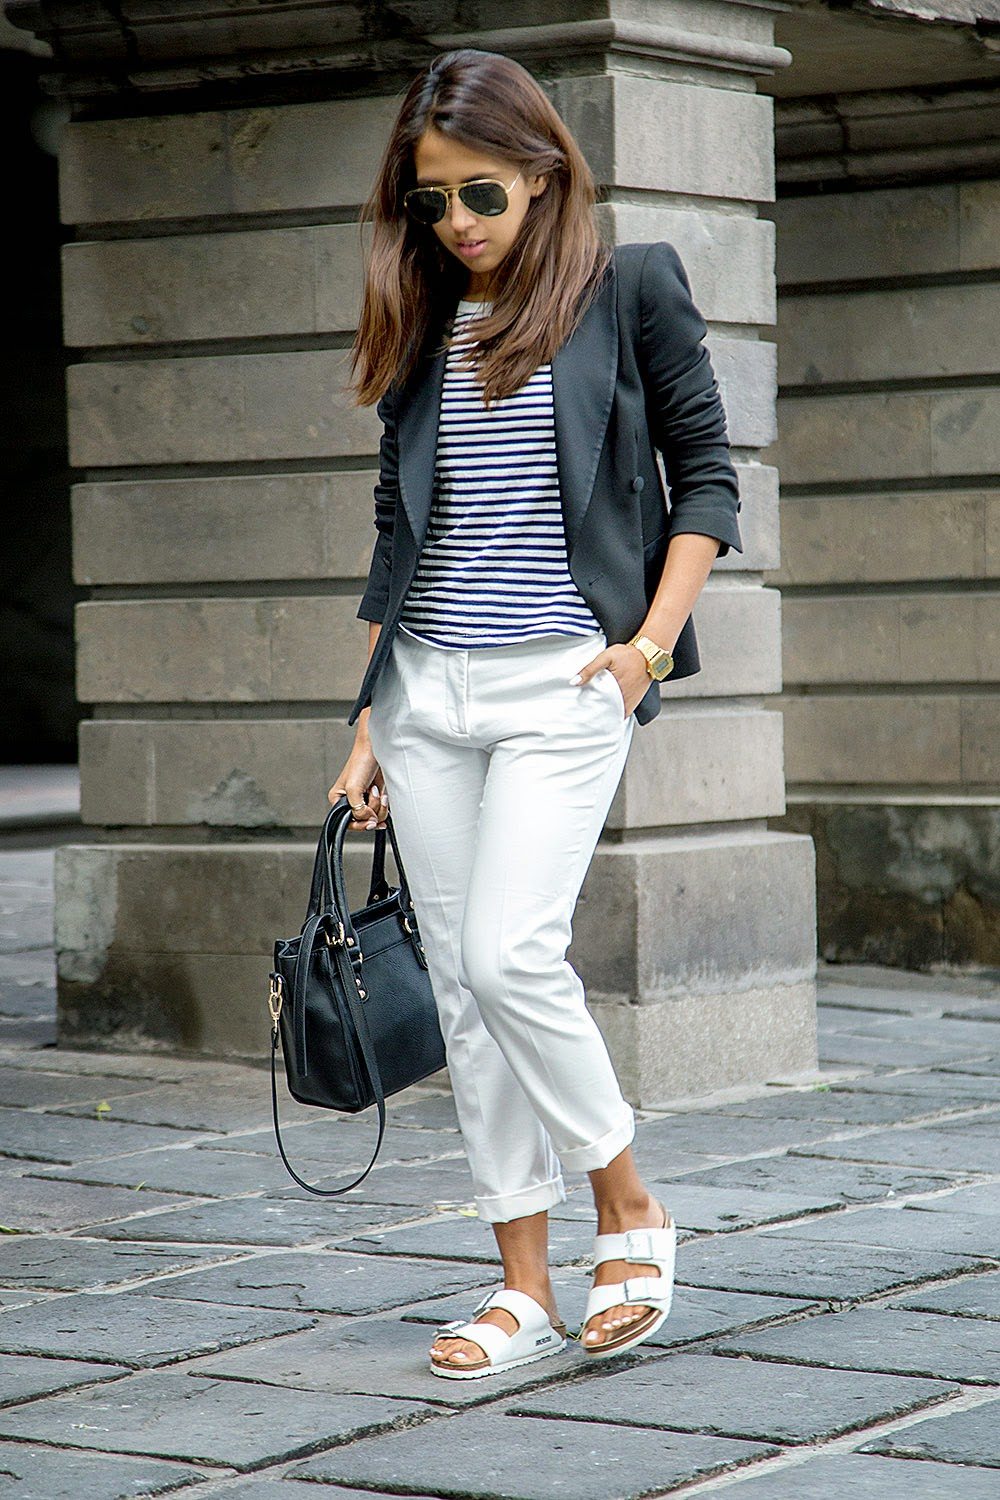 casual outfit in white chinos and stripes